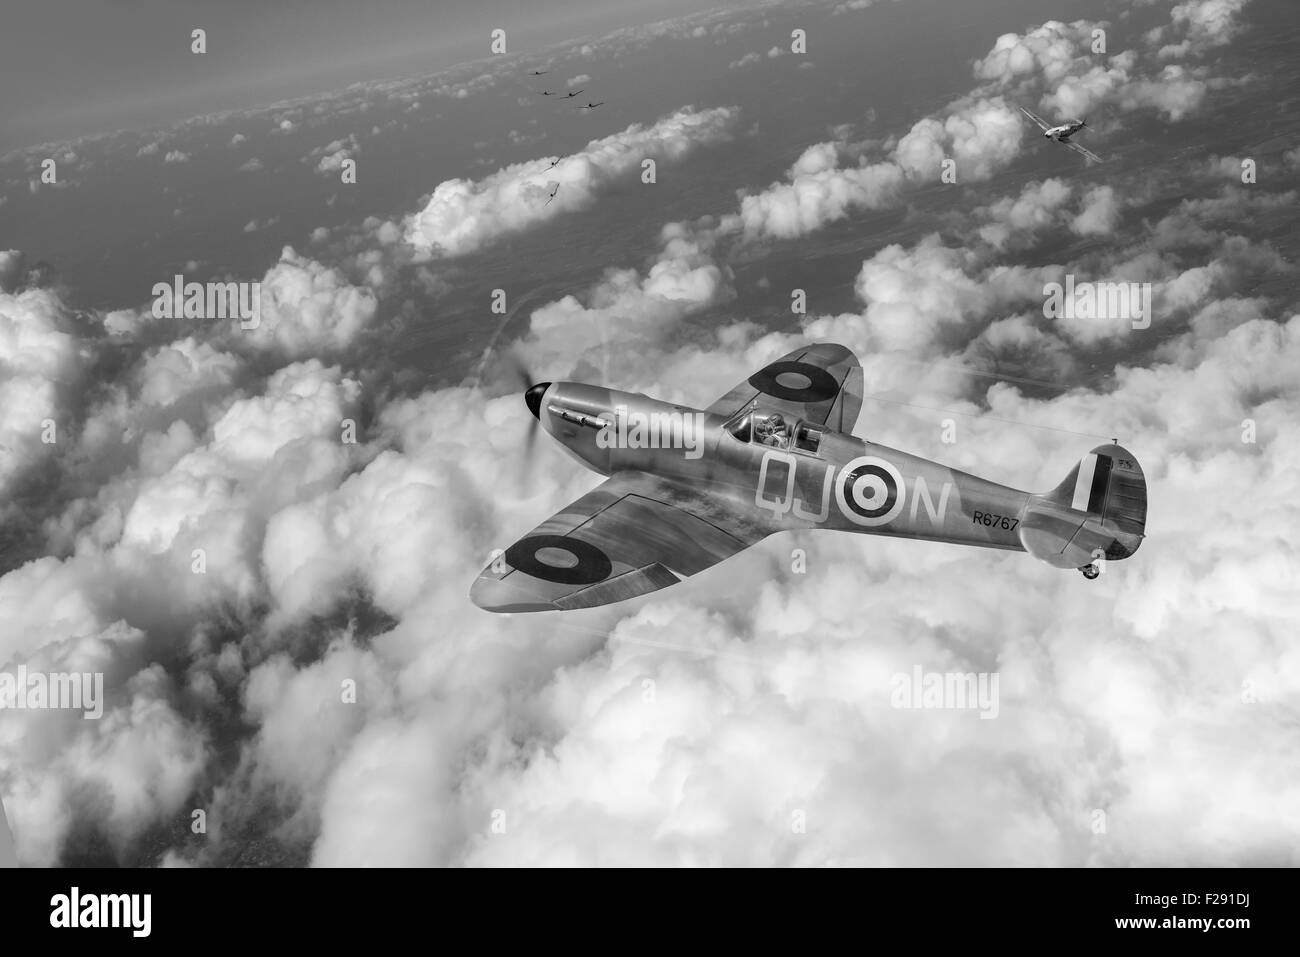 RAF pilot Charles Sydney of 92 Squadron in his Mk I Spitfire R6767 coded QJ-N in action against Luftwaffe Messerschmitt - Stock Image